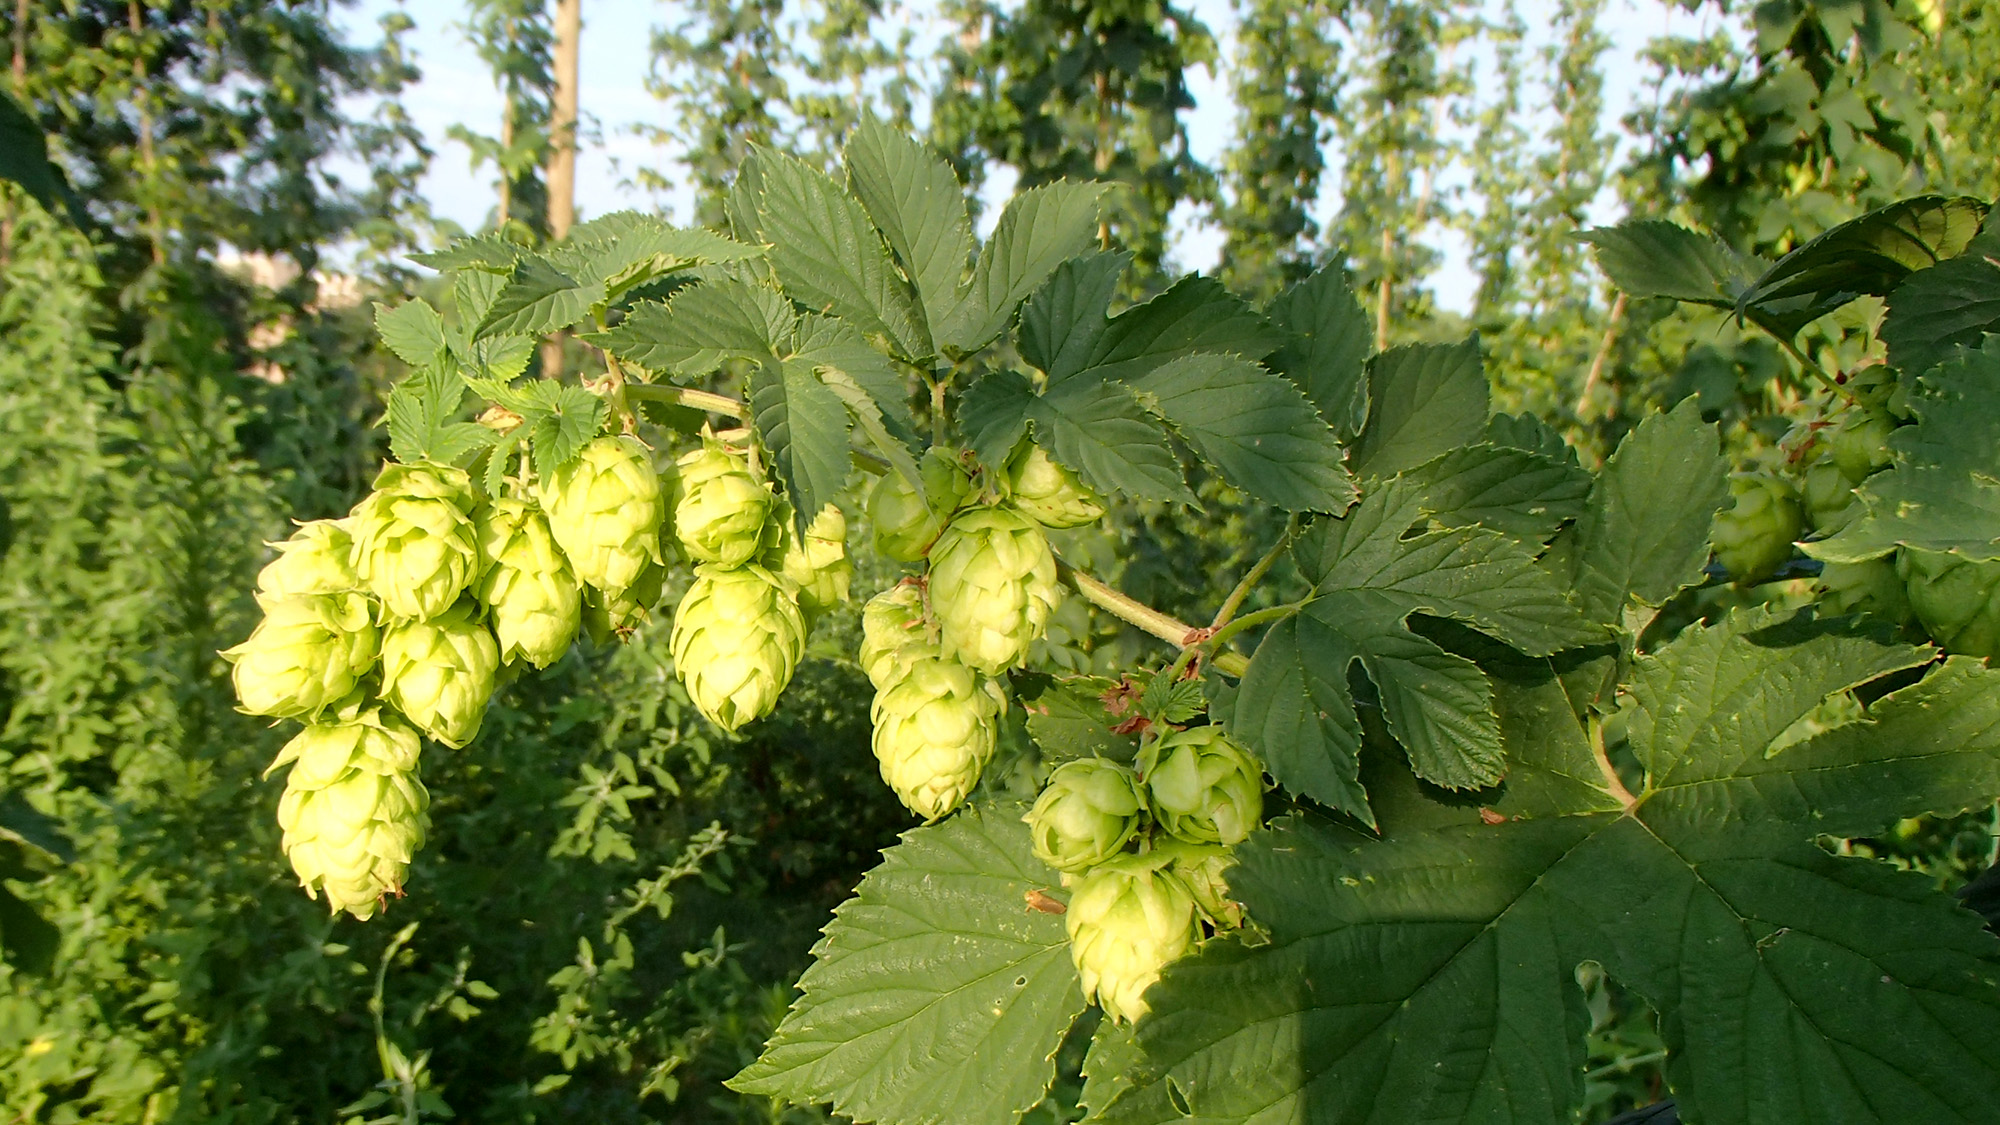 A hops field day will be held Aug. 21 at the West Central Research, Extension and Education Center in North Platte.